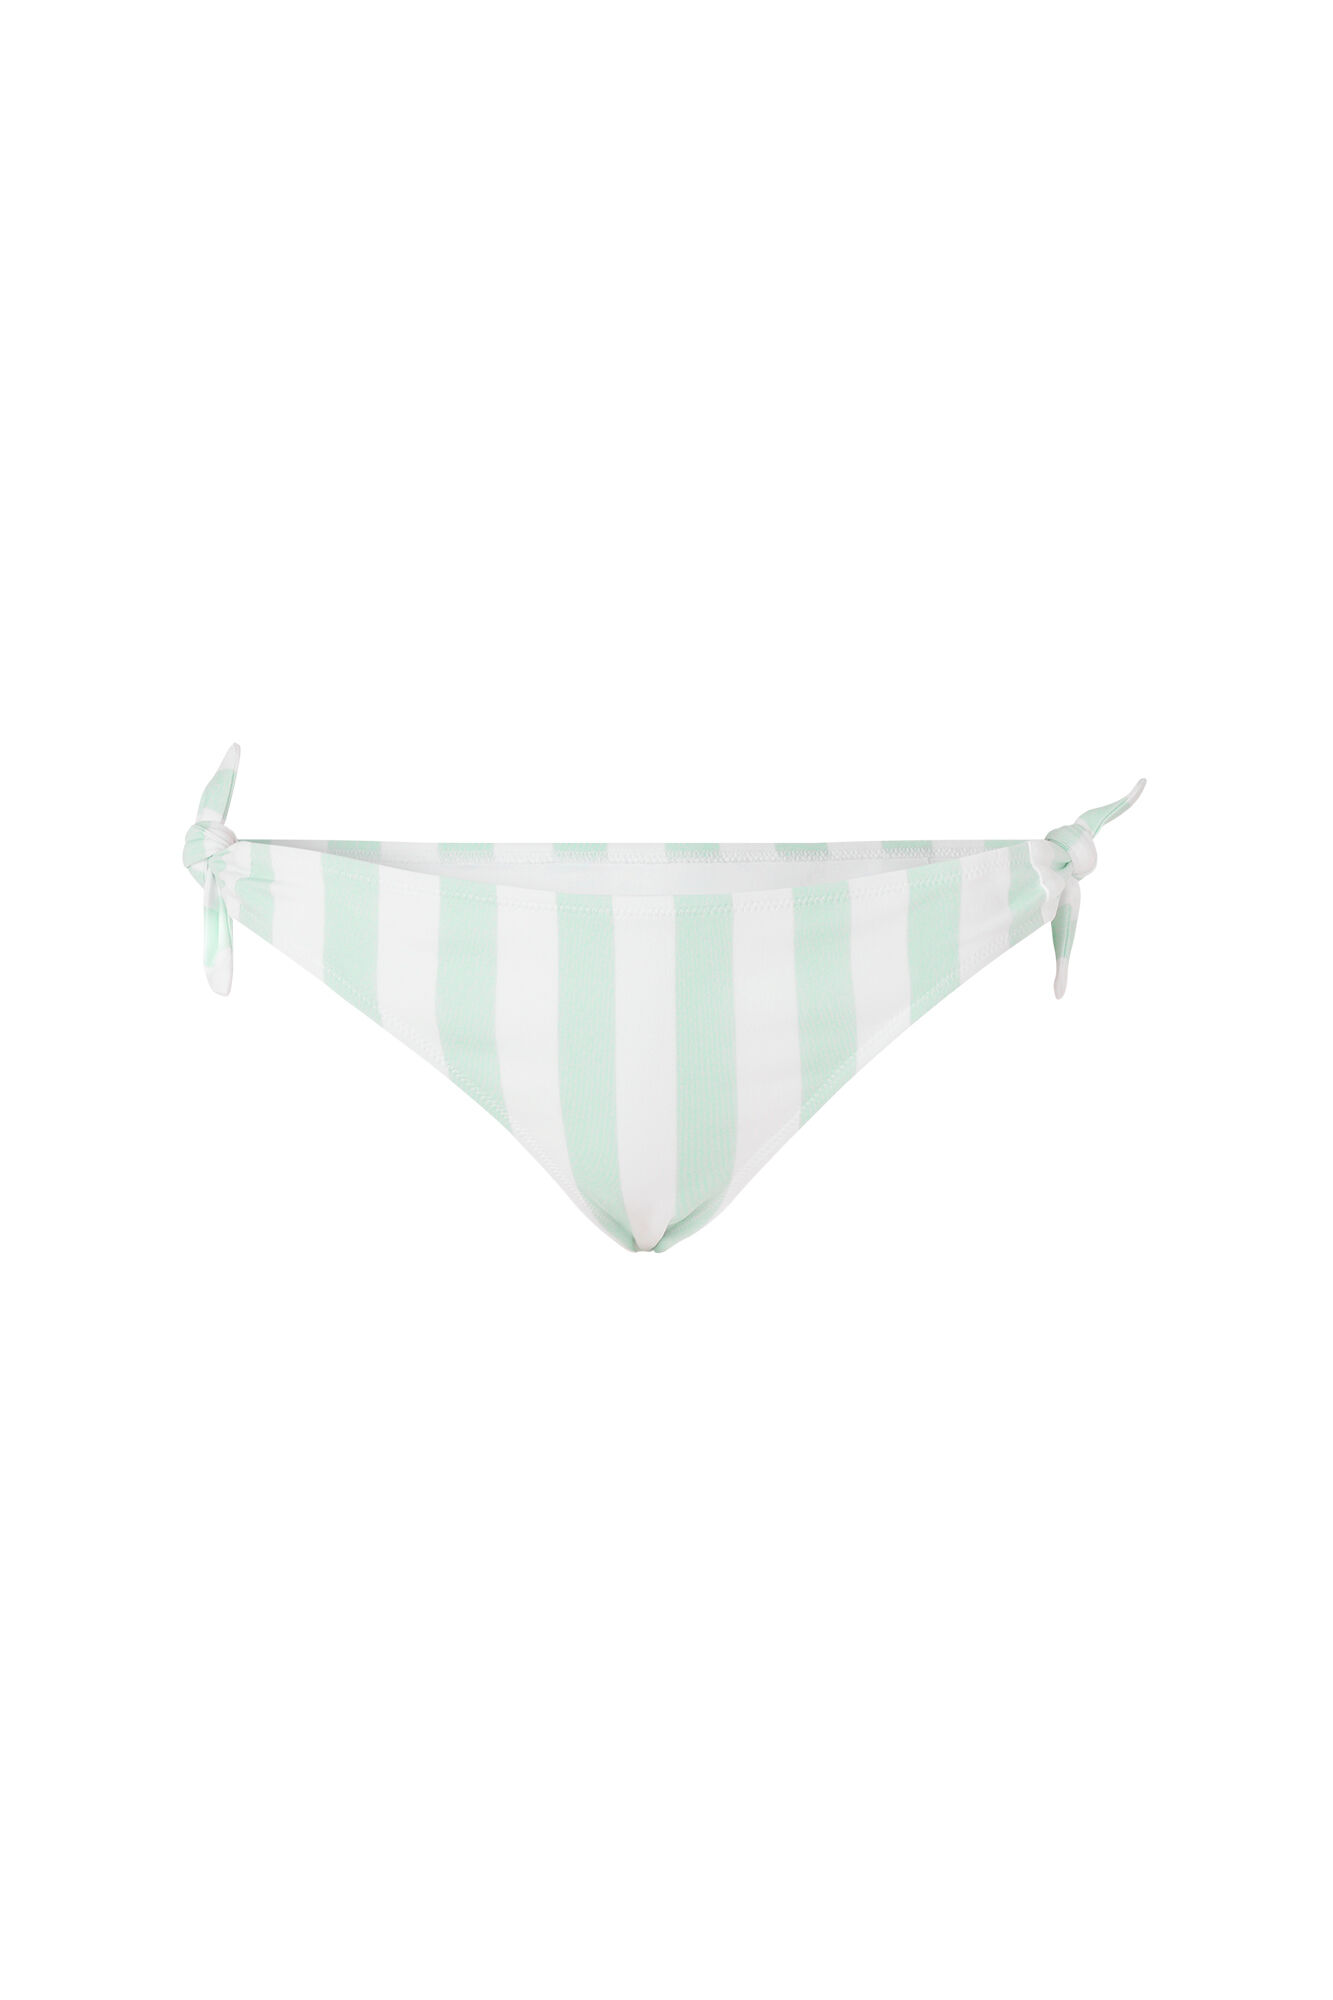 ENBEACH SWIM PANTIES AOP 5999